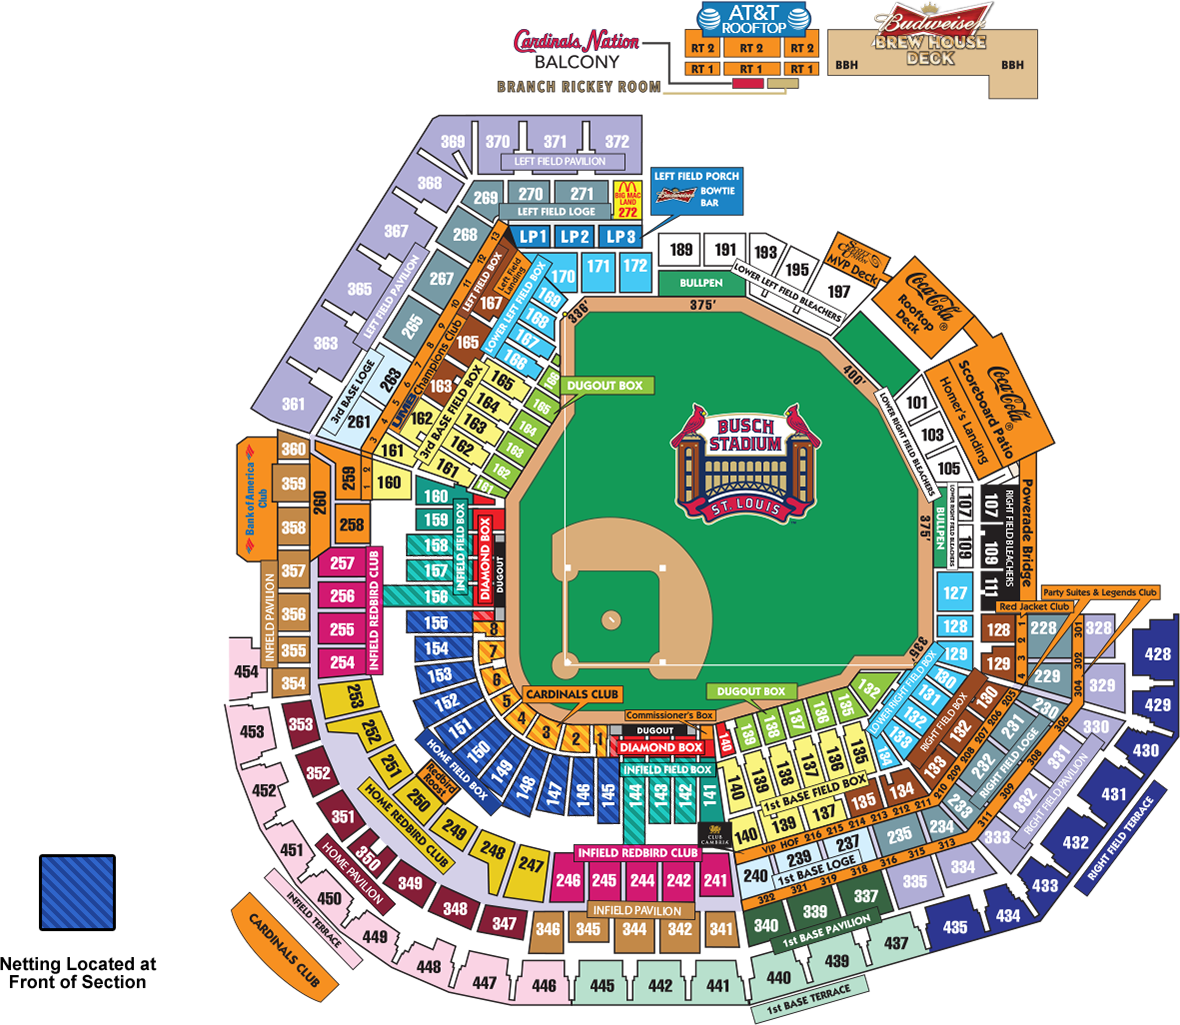 ADA Information Cardinalscom Ballpark Information - Us cellular field seating map